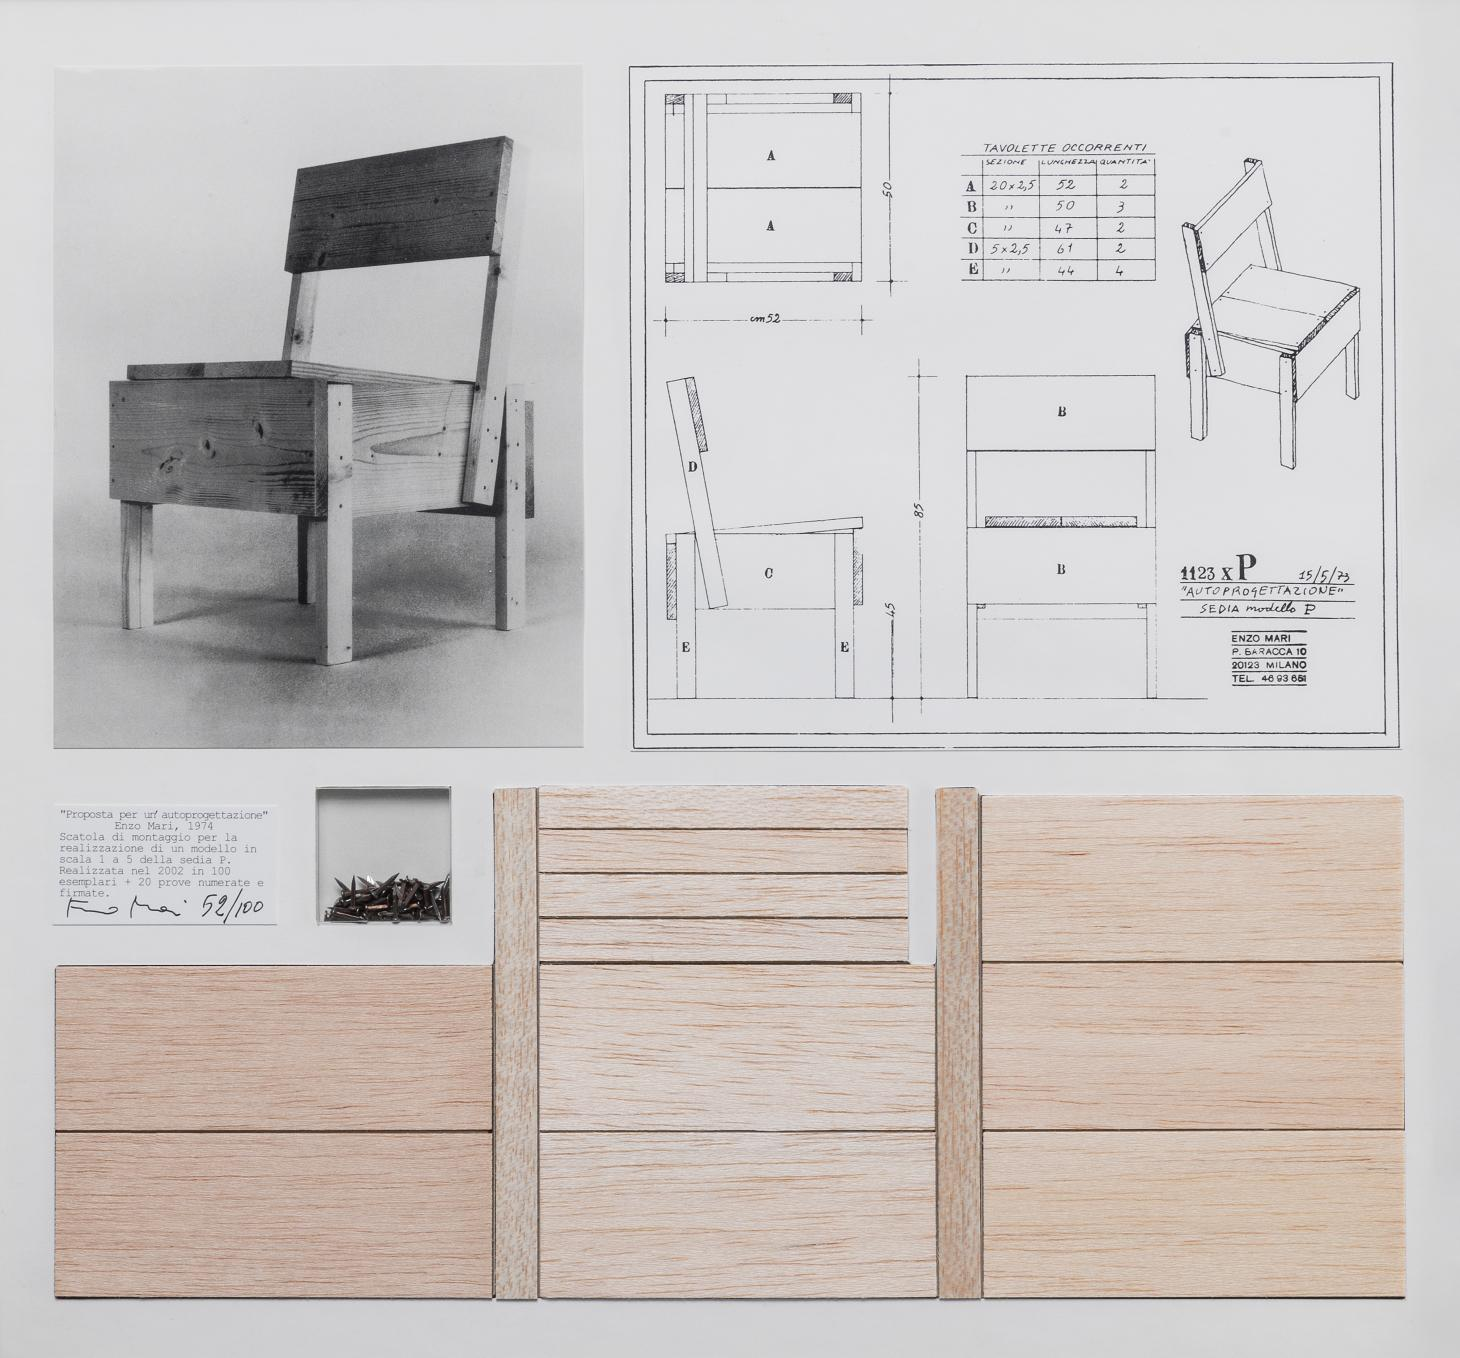 A black and white photograph or a wooden chair by Enzo Mari with wood pieces to make it and sketches